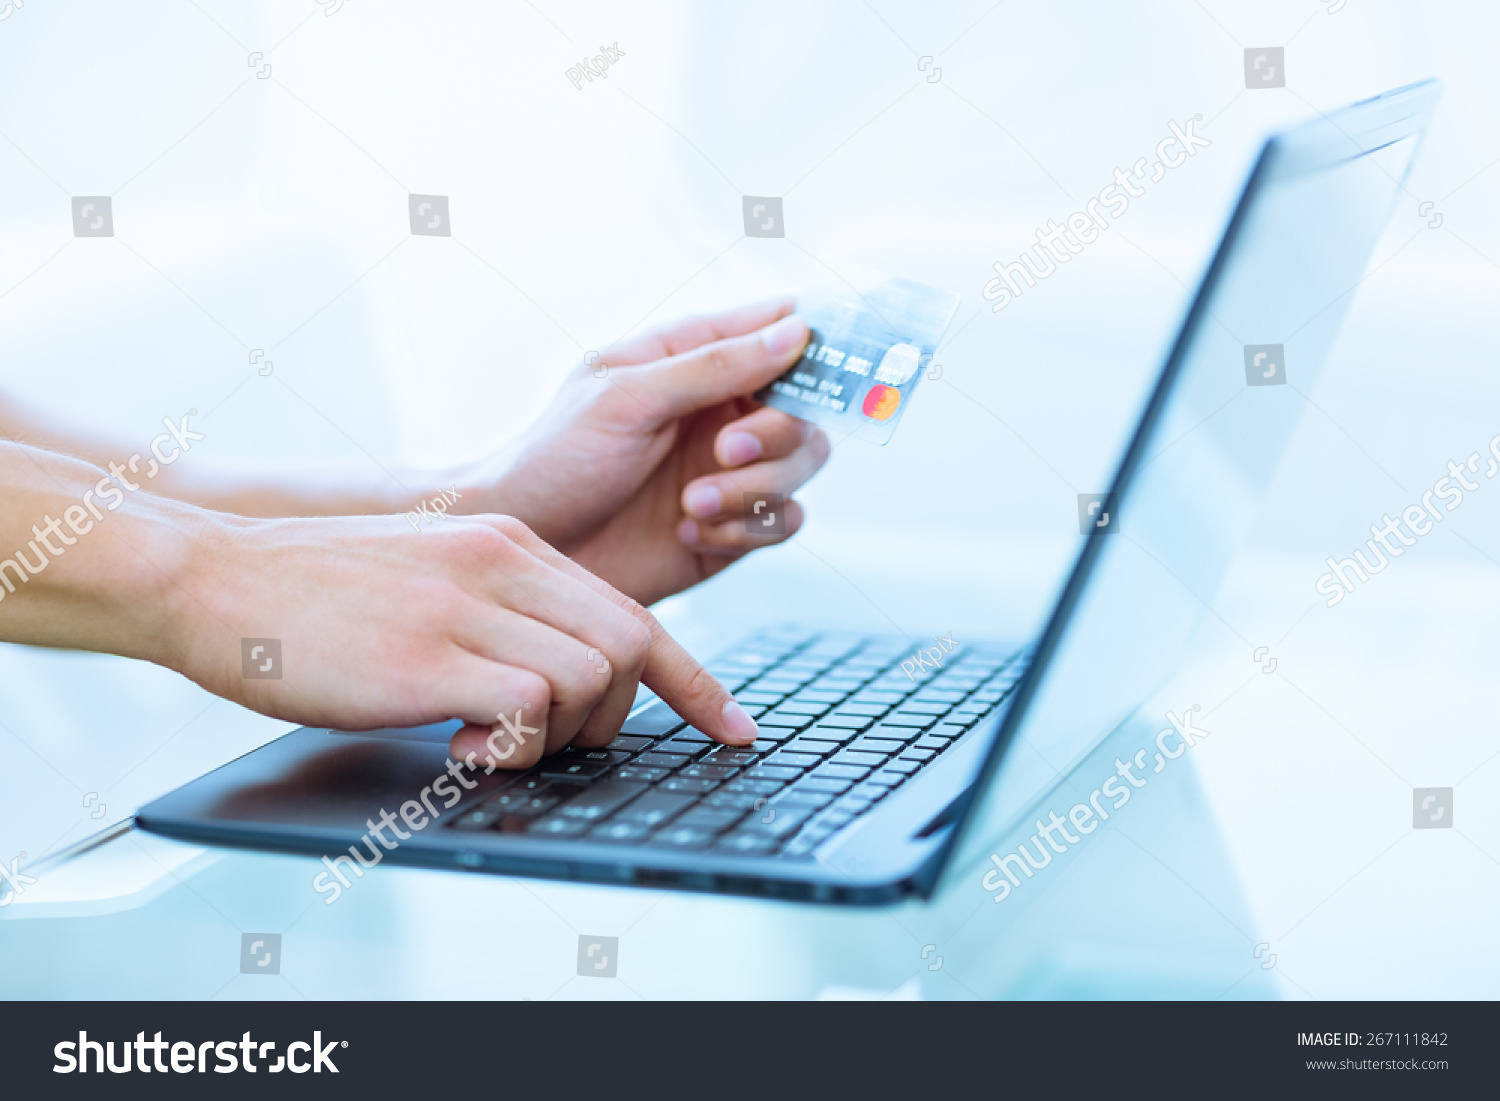 closeup hands shoppingpaying online using laptop stock photo 267111842 shutterstock. Black Bedroom Furniture Sets. Home Design Ideas